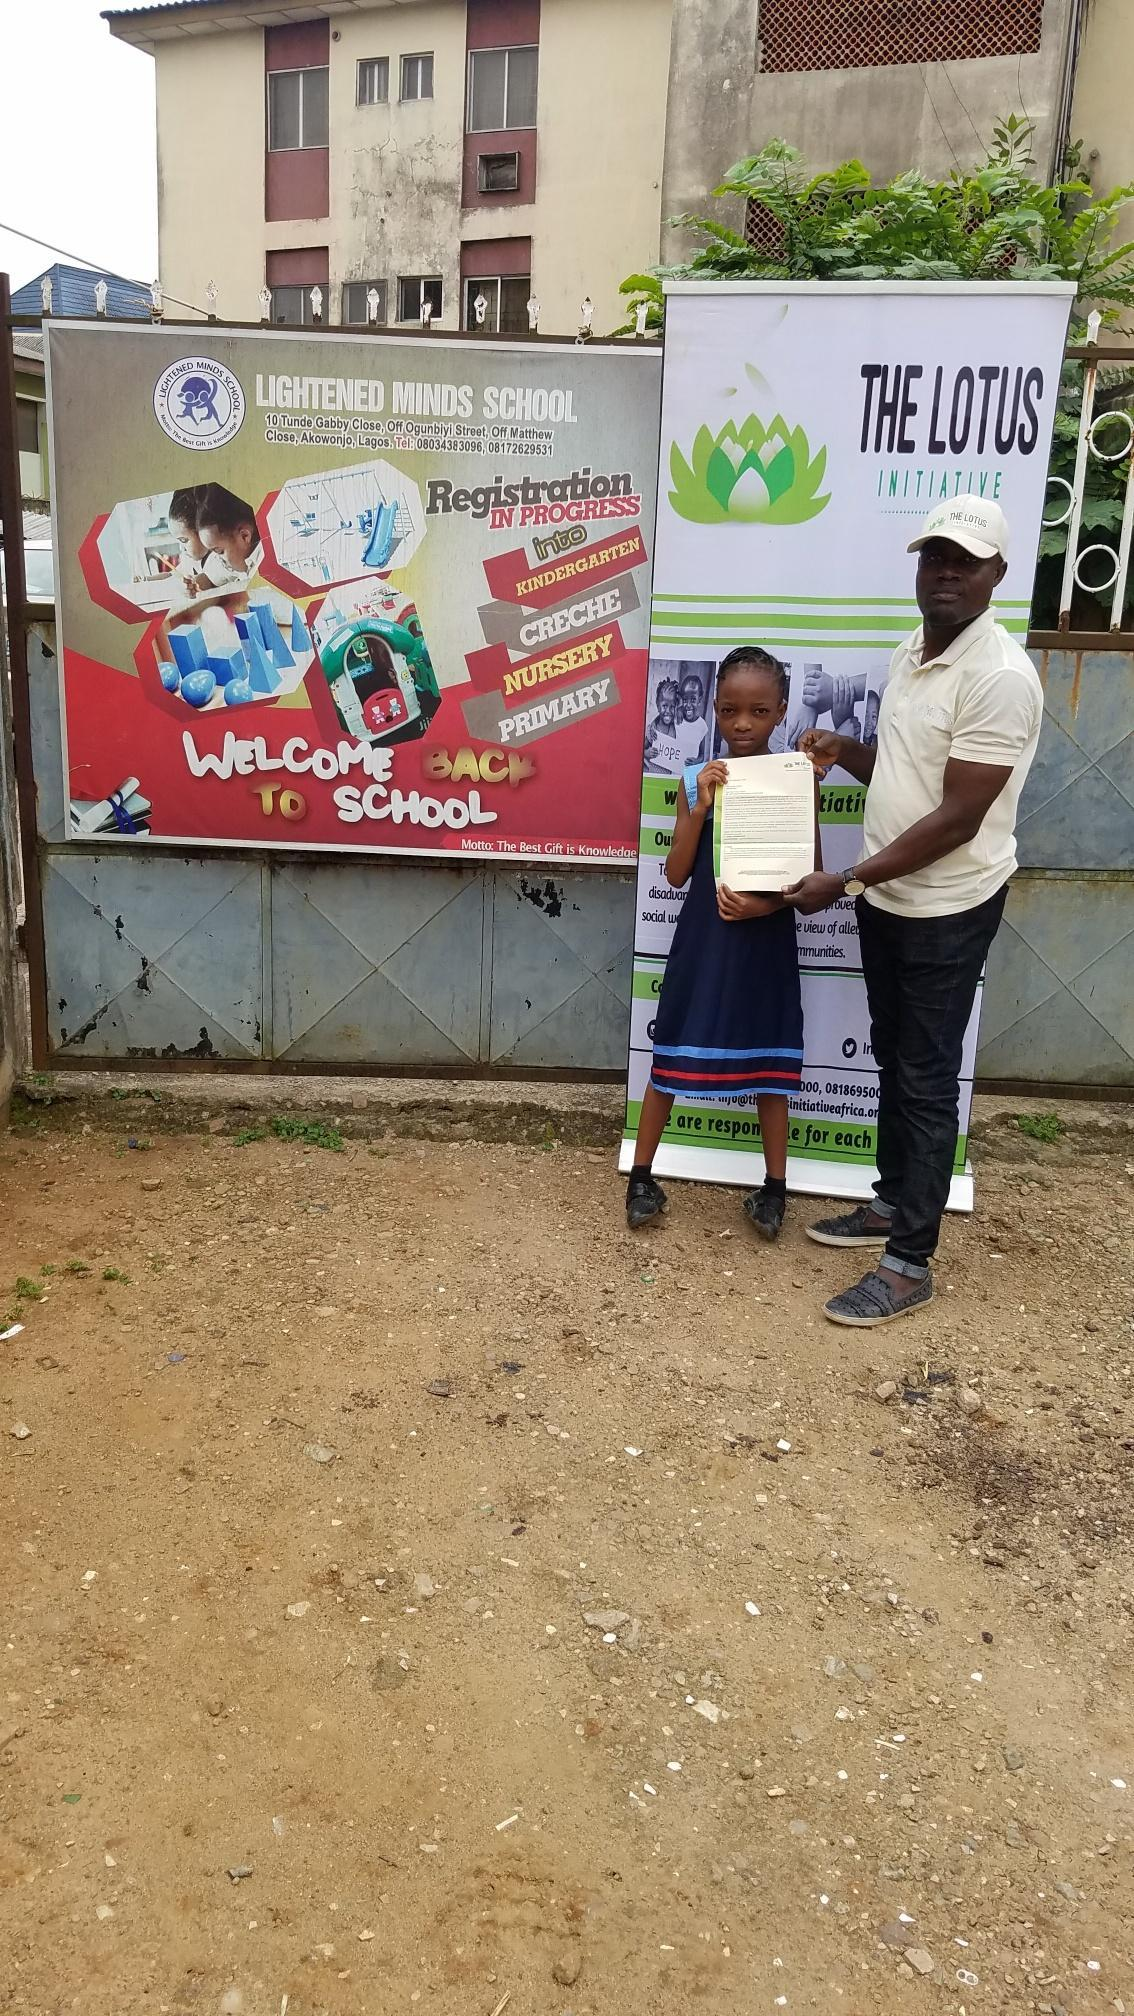 Lotus Initiative Program Manager with Miss. Joy Akaaba of Lightened Minds Private School